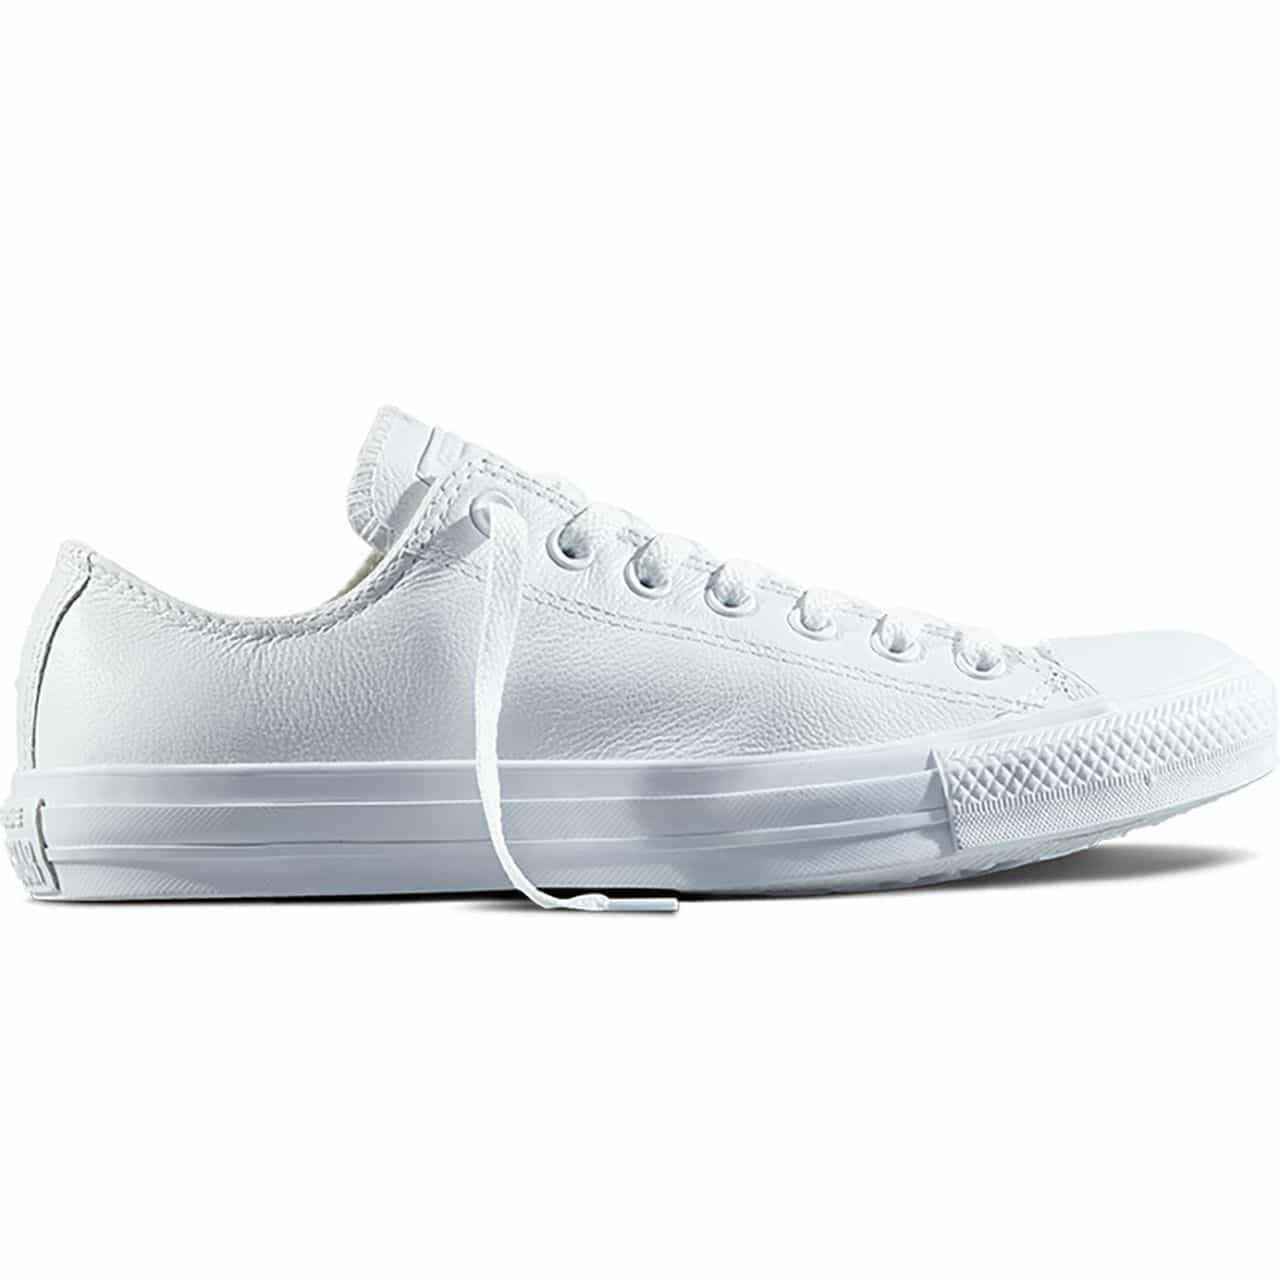 TENISI ORIGINALI CONVERSE CHUCK TAYLOR AS OX - 136823C